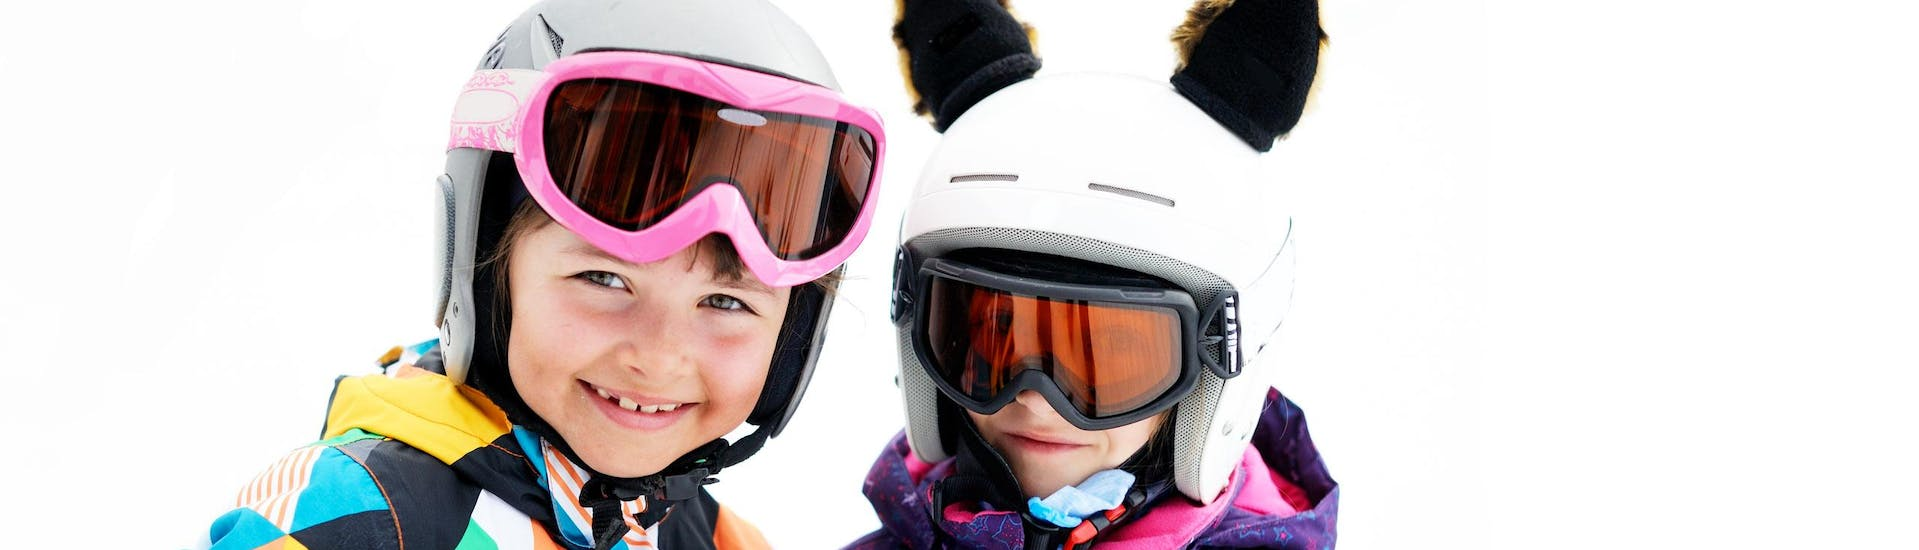 Two young children smiling at the camera during one of the Kidscourse organised by Skischule Ötscher (duplicate).